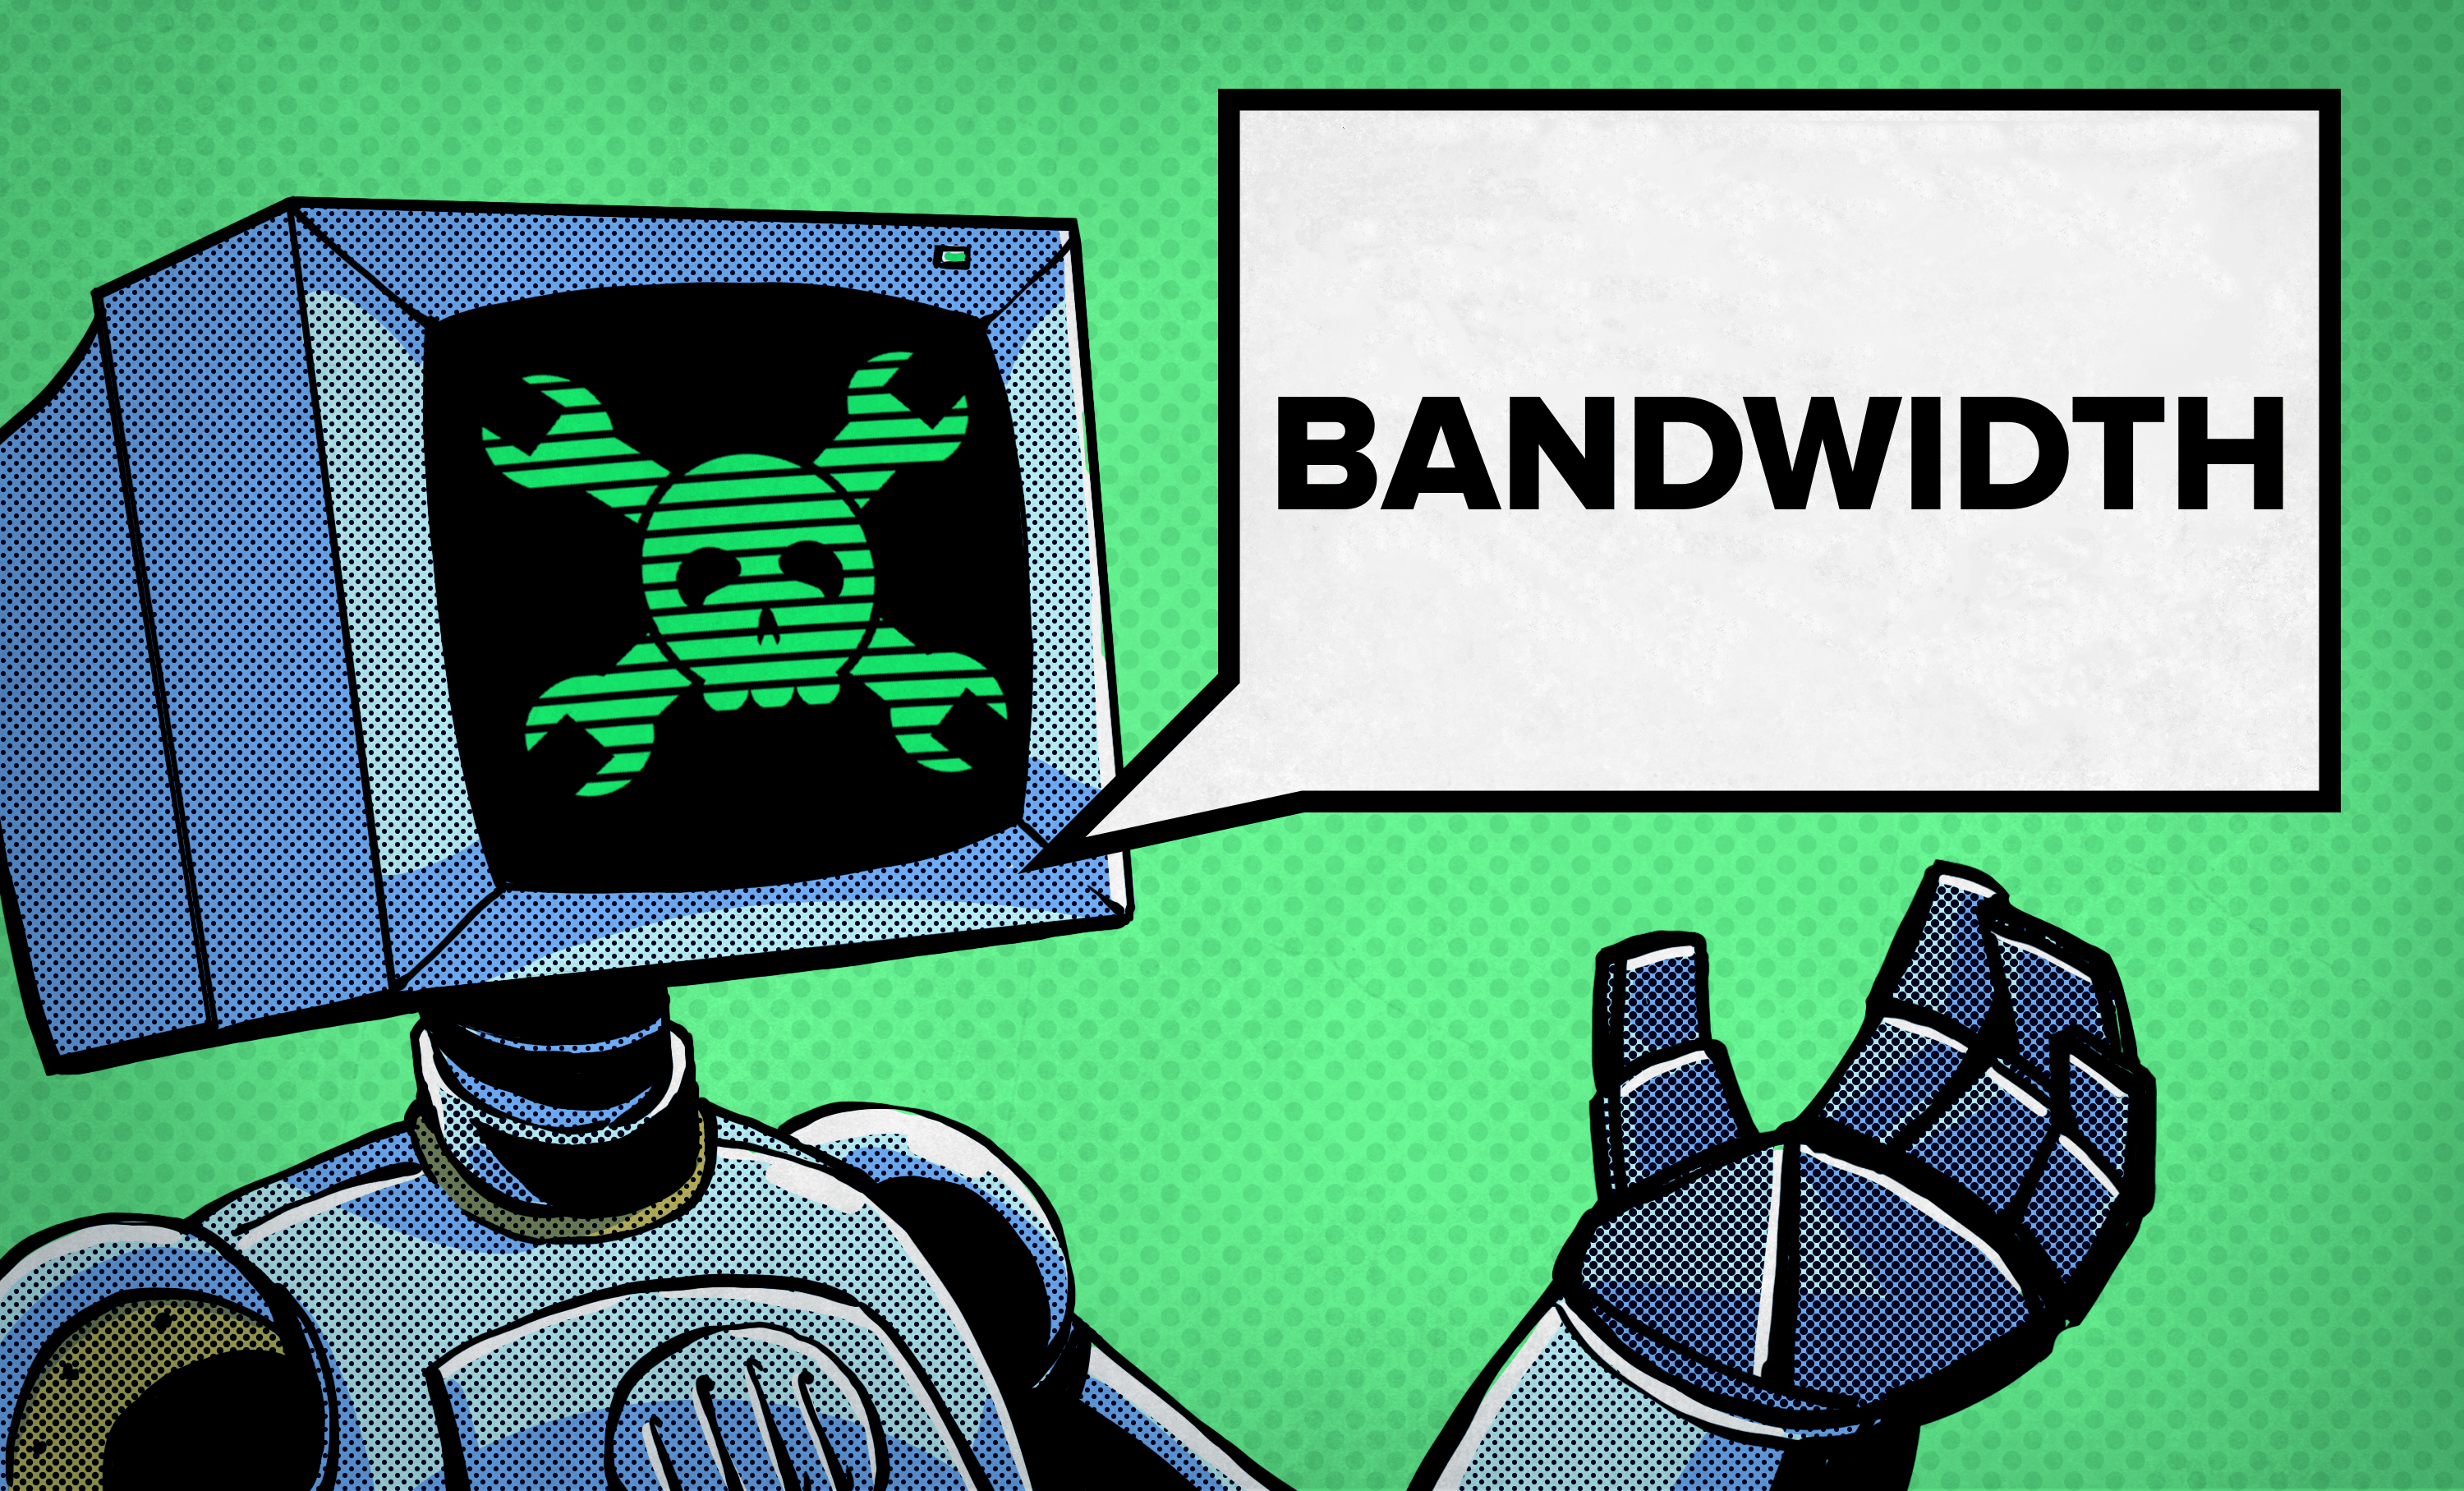 Say it With Me: Bandwidth